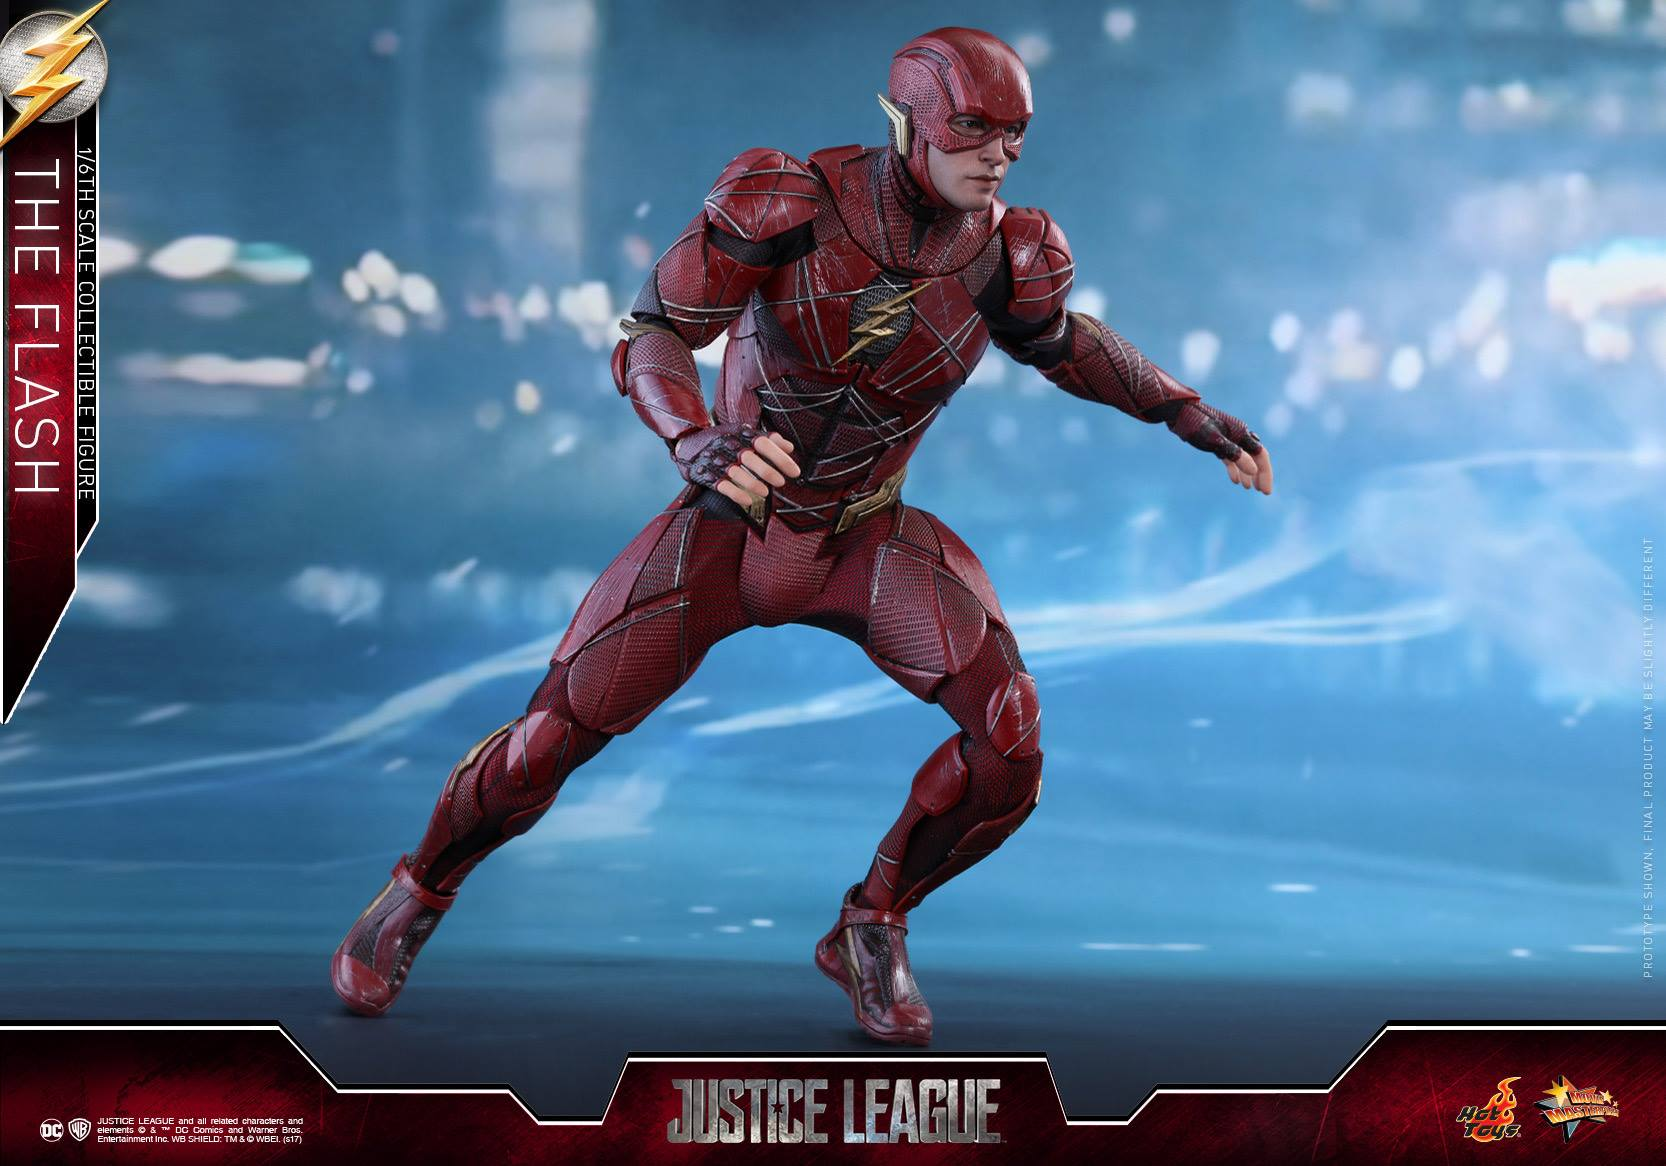 Hot-Toys-Justice-League-The-Flash-017